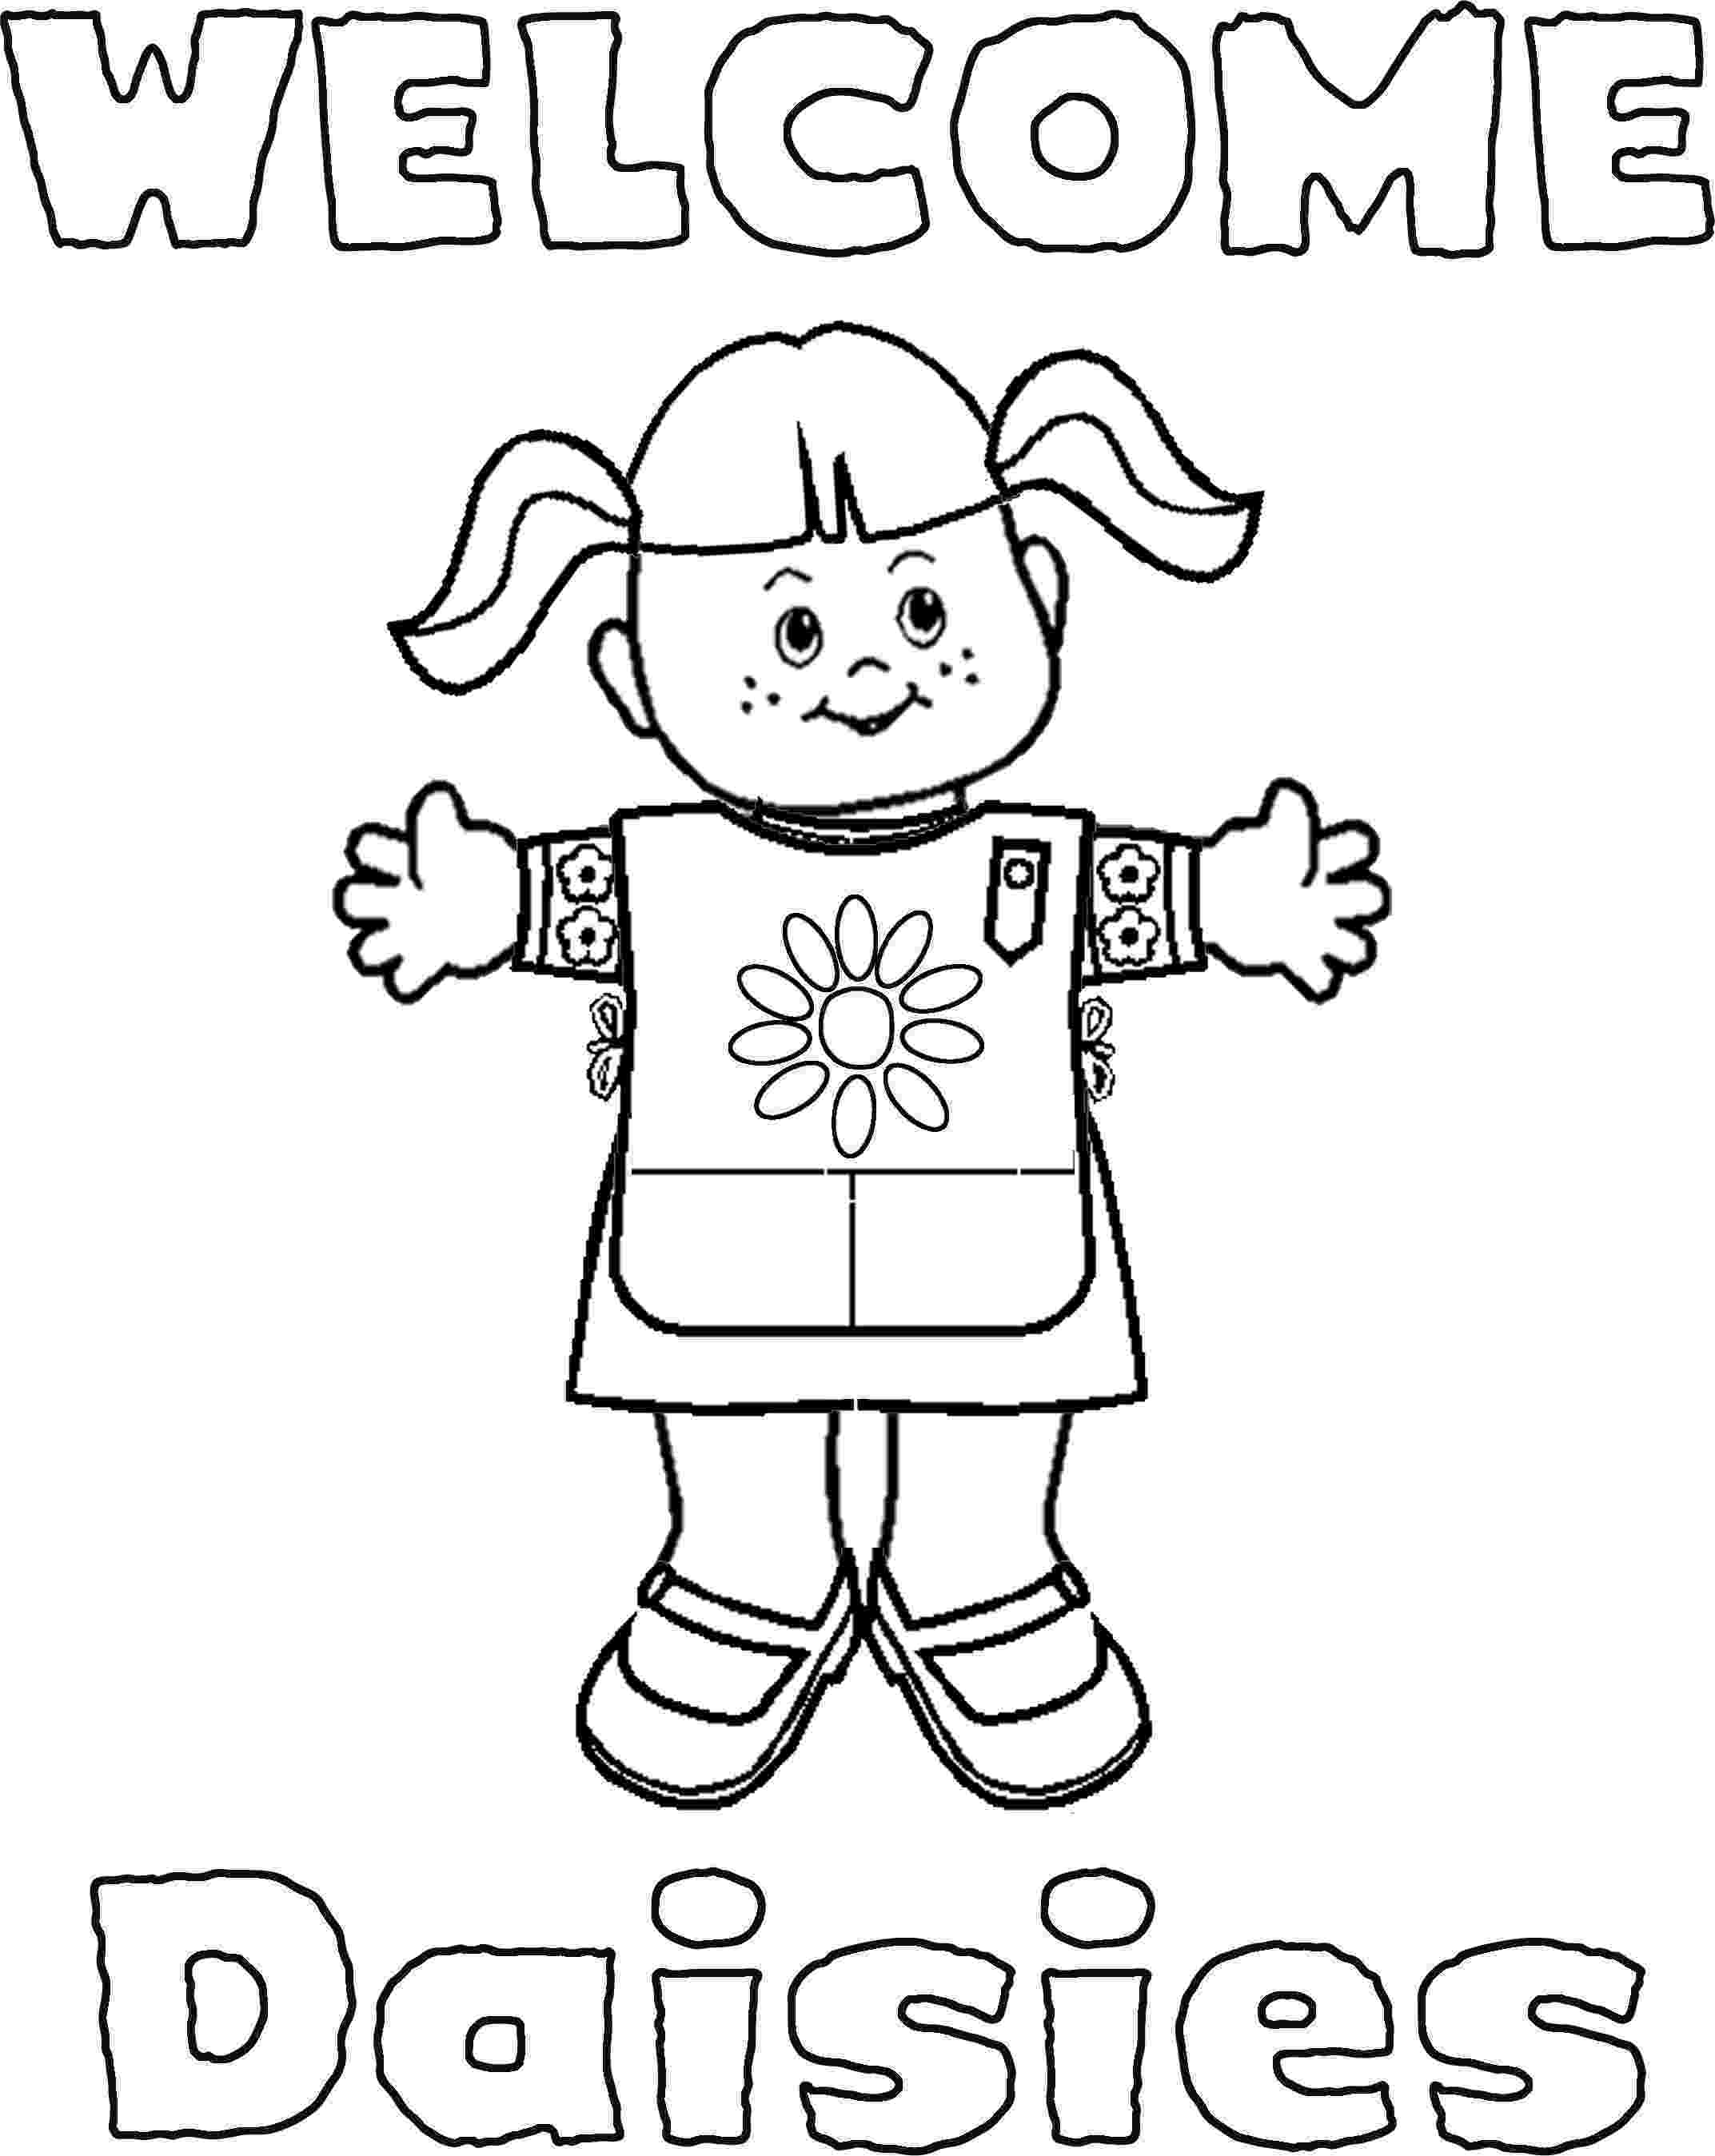 brownie color brownie and peanut coloring page coloringcom brownie color